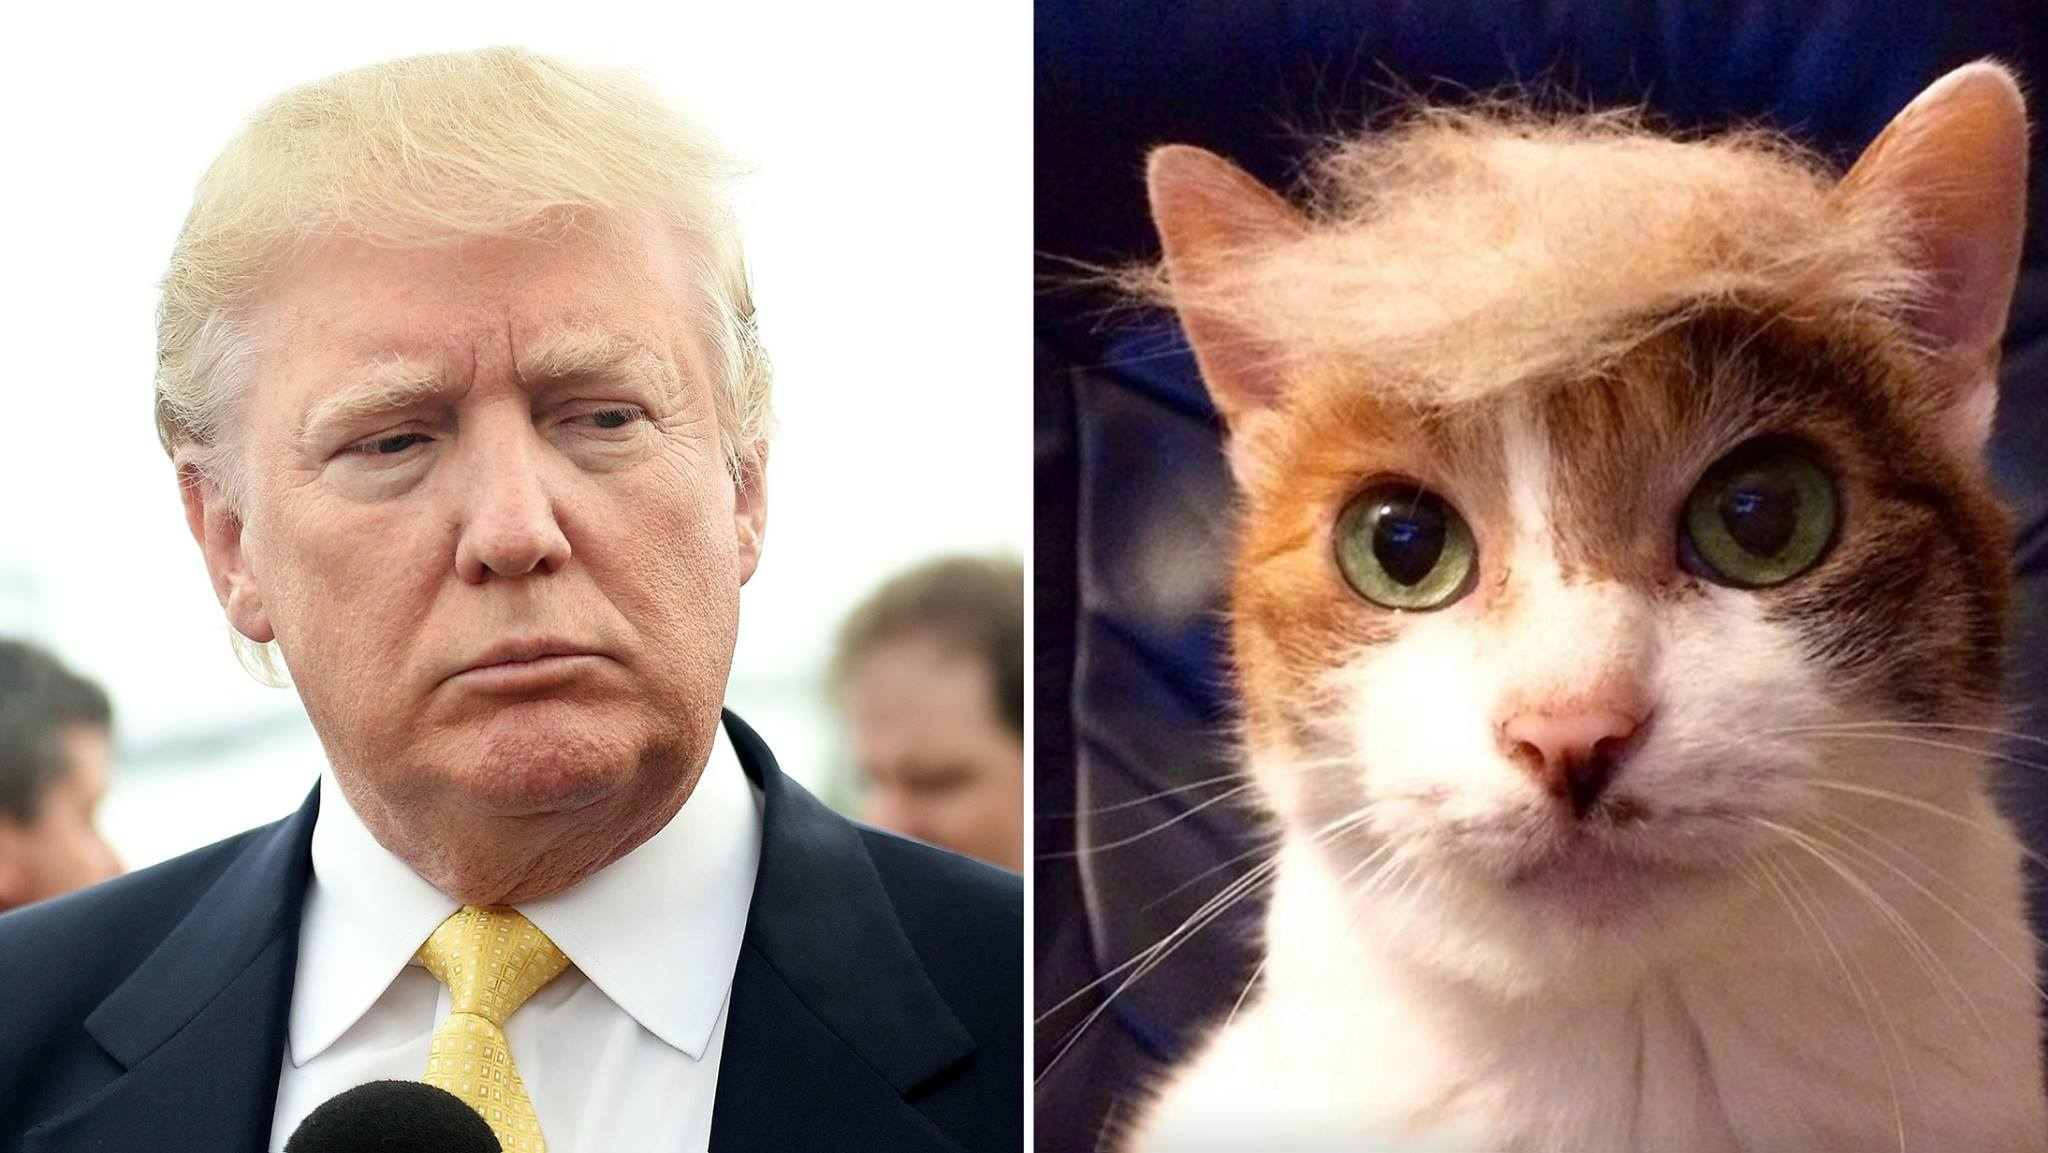 Cats and Dogs rocking Donald Trump's hair